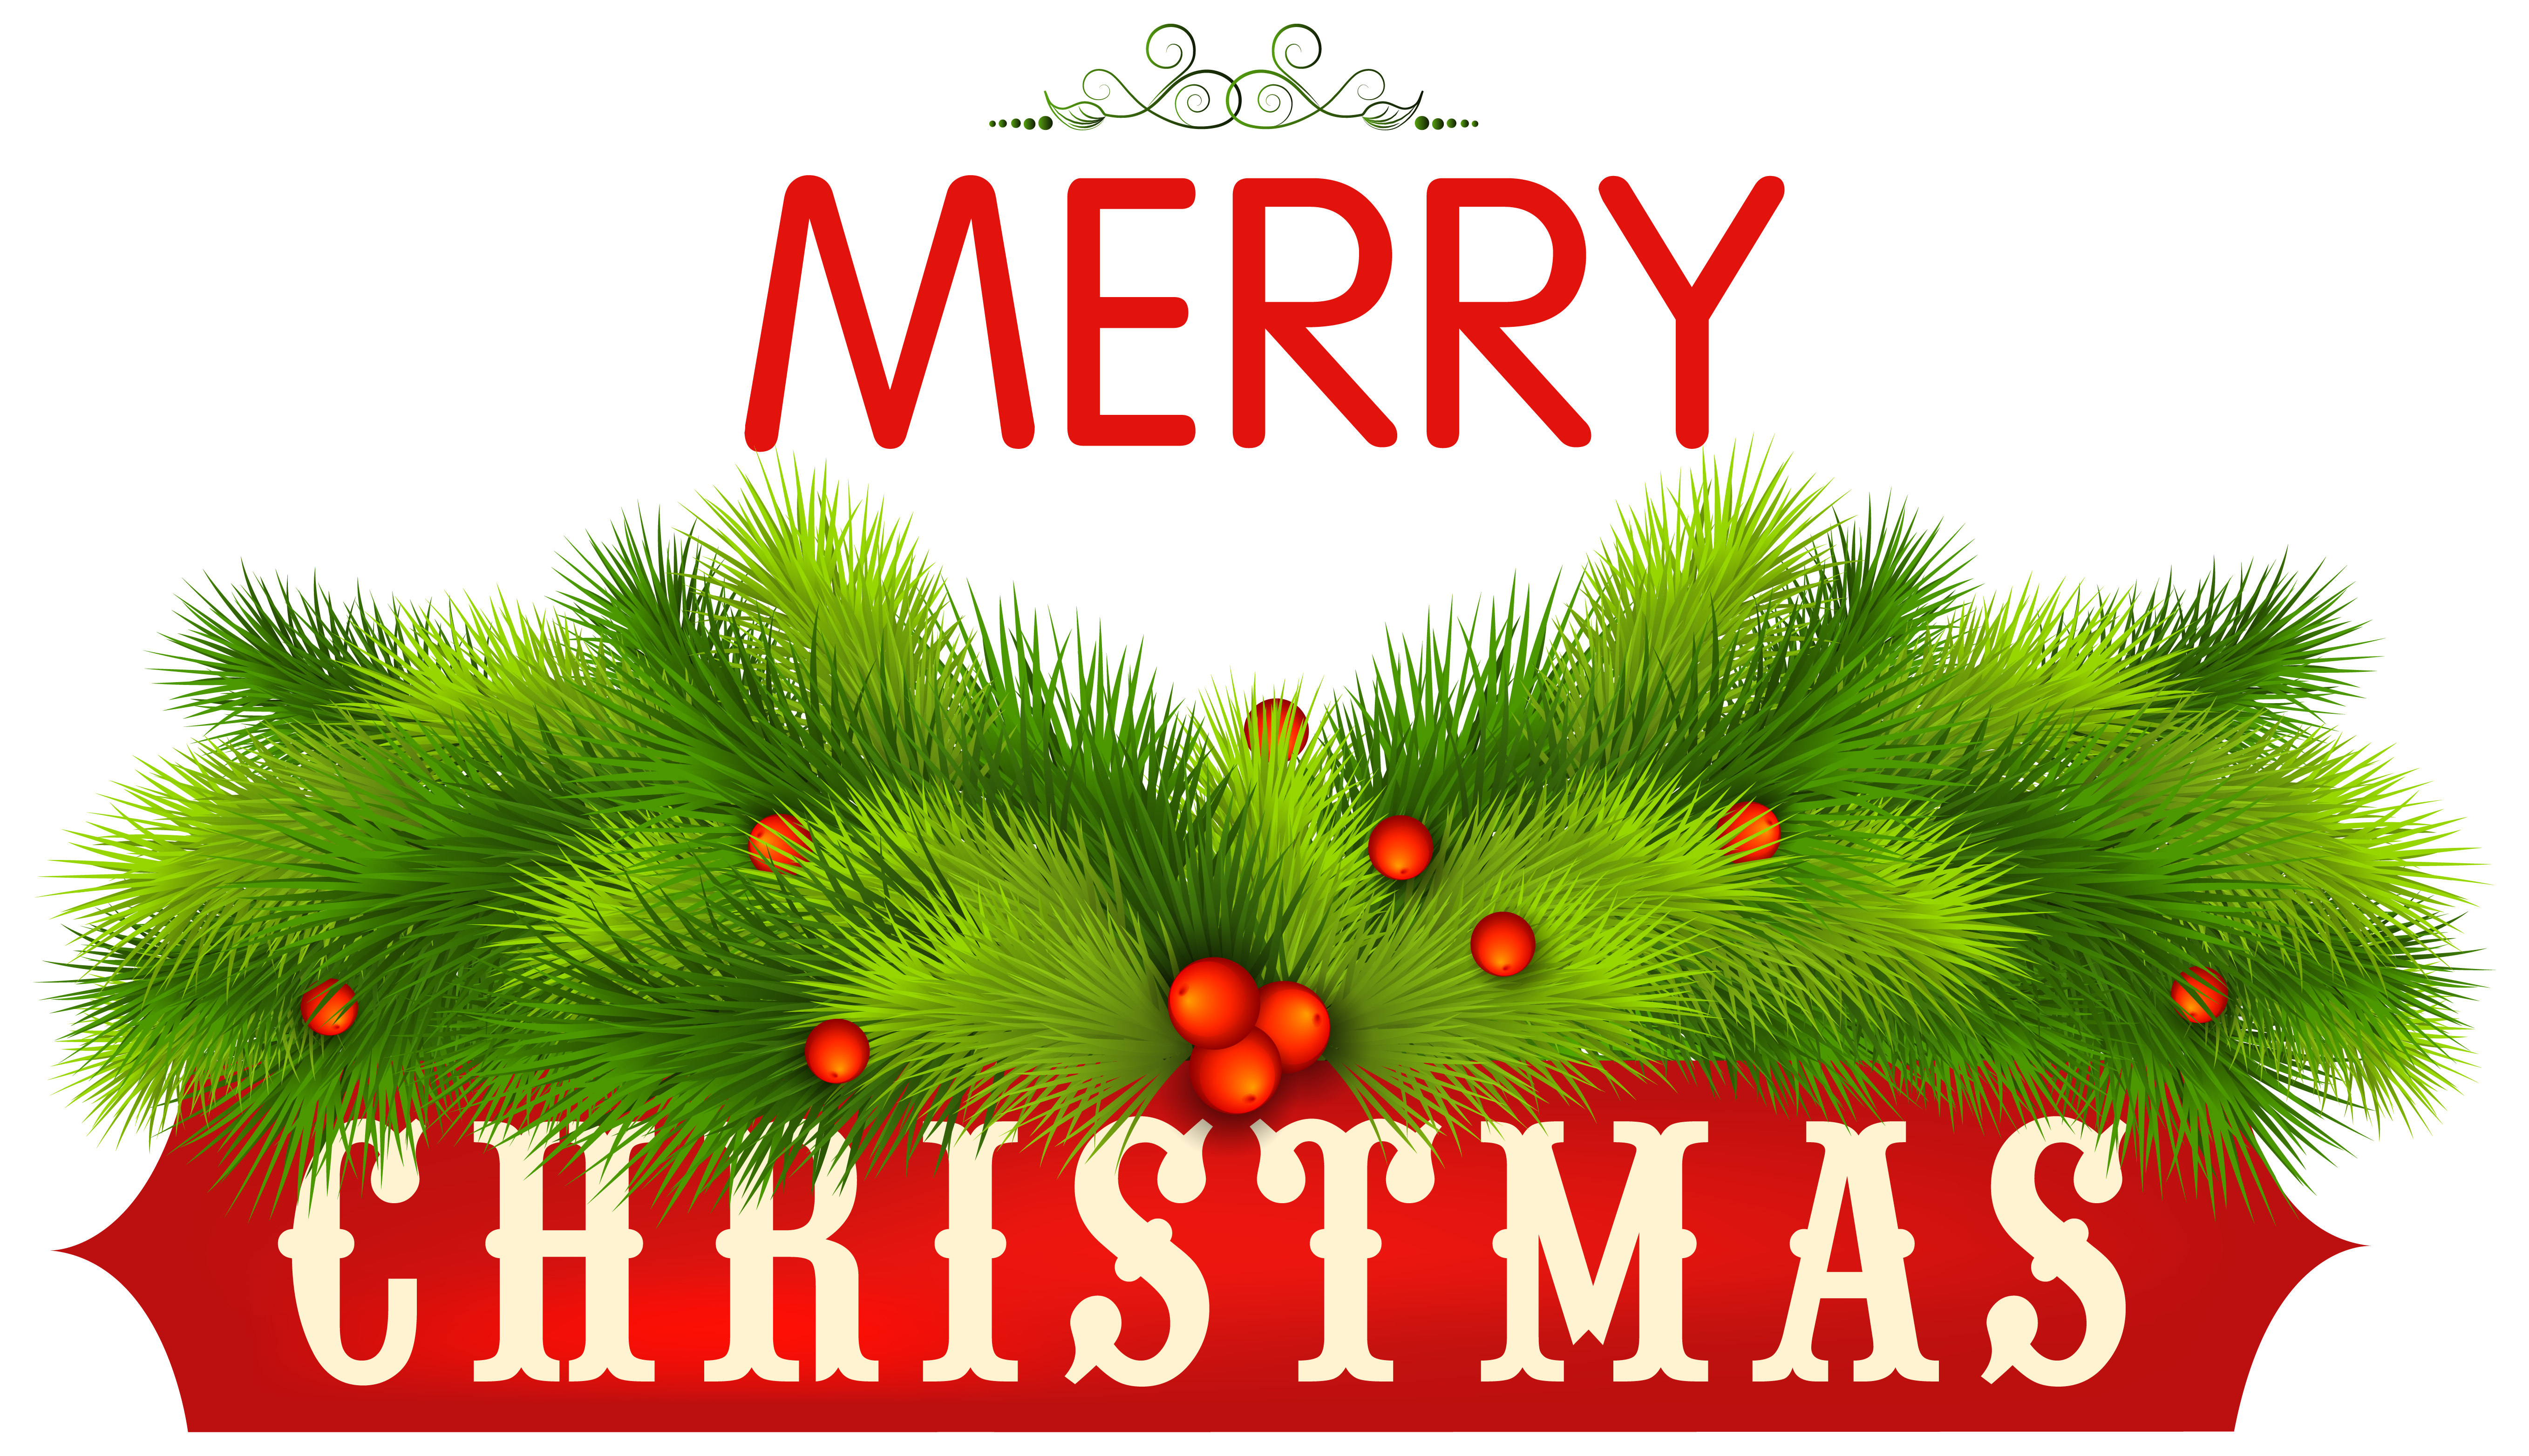 5430x3127 Merry Christmas Decorative Png Clipart Imageu200b Gallery